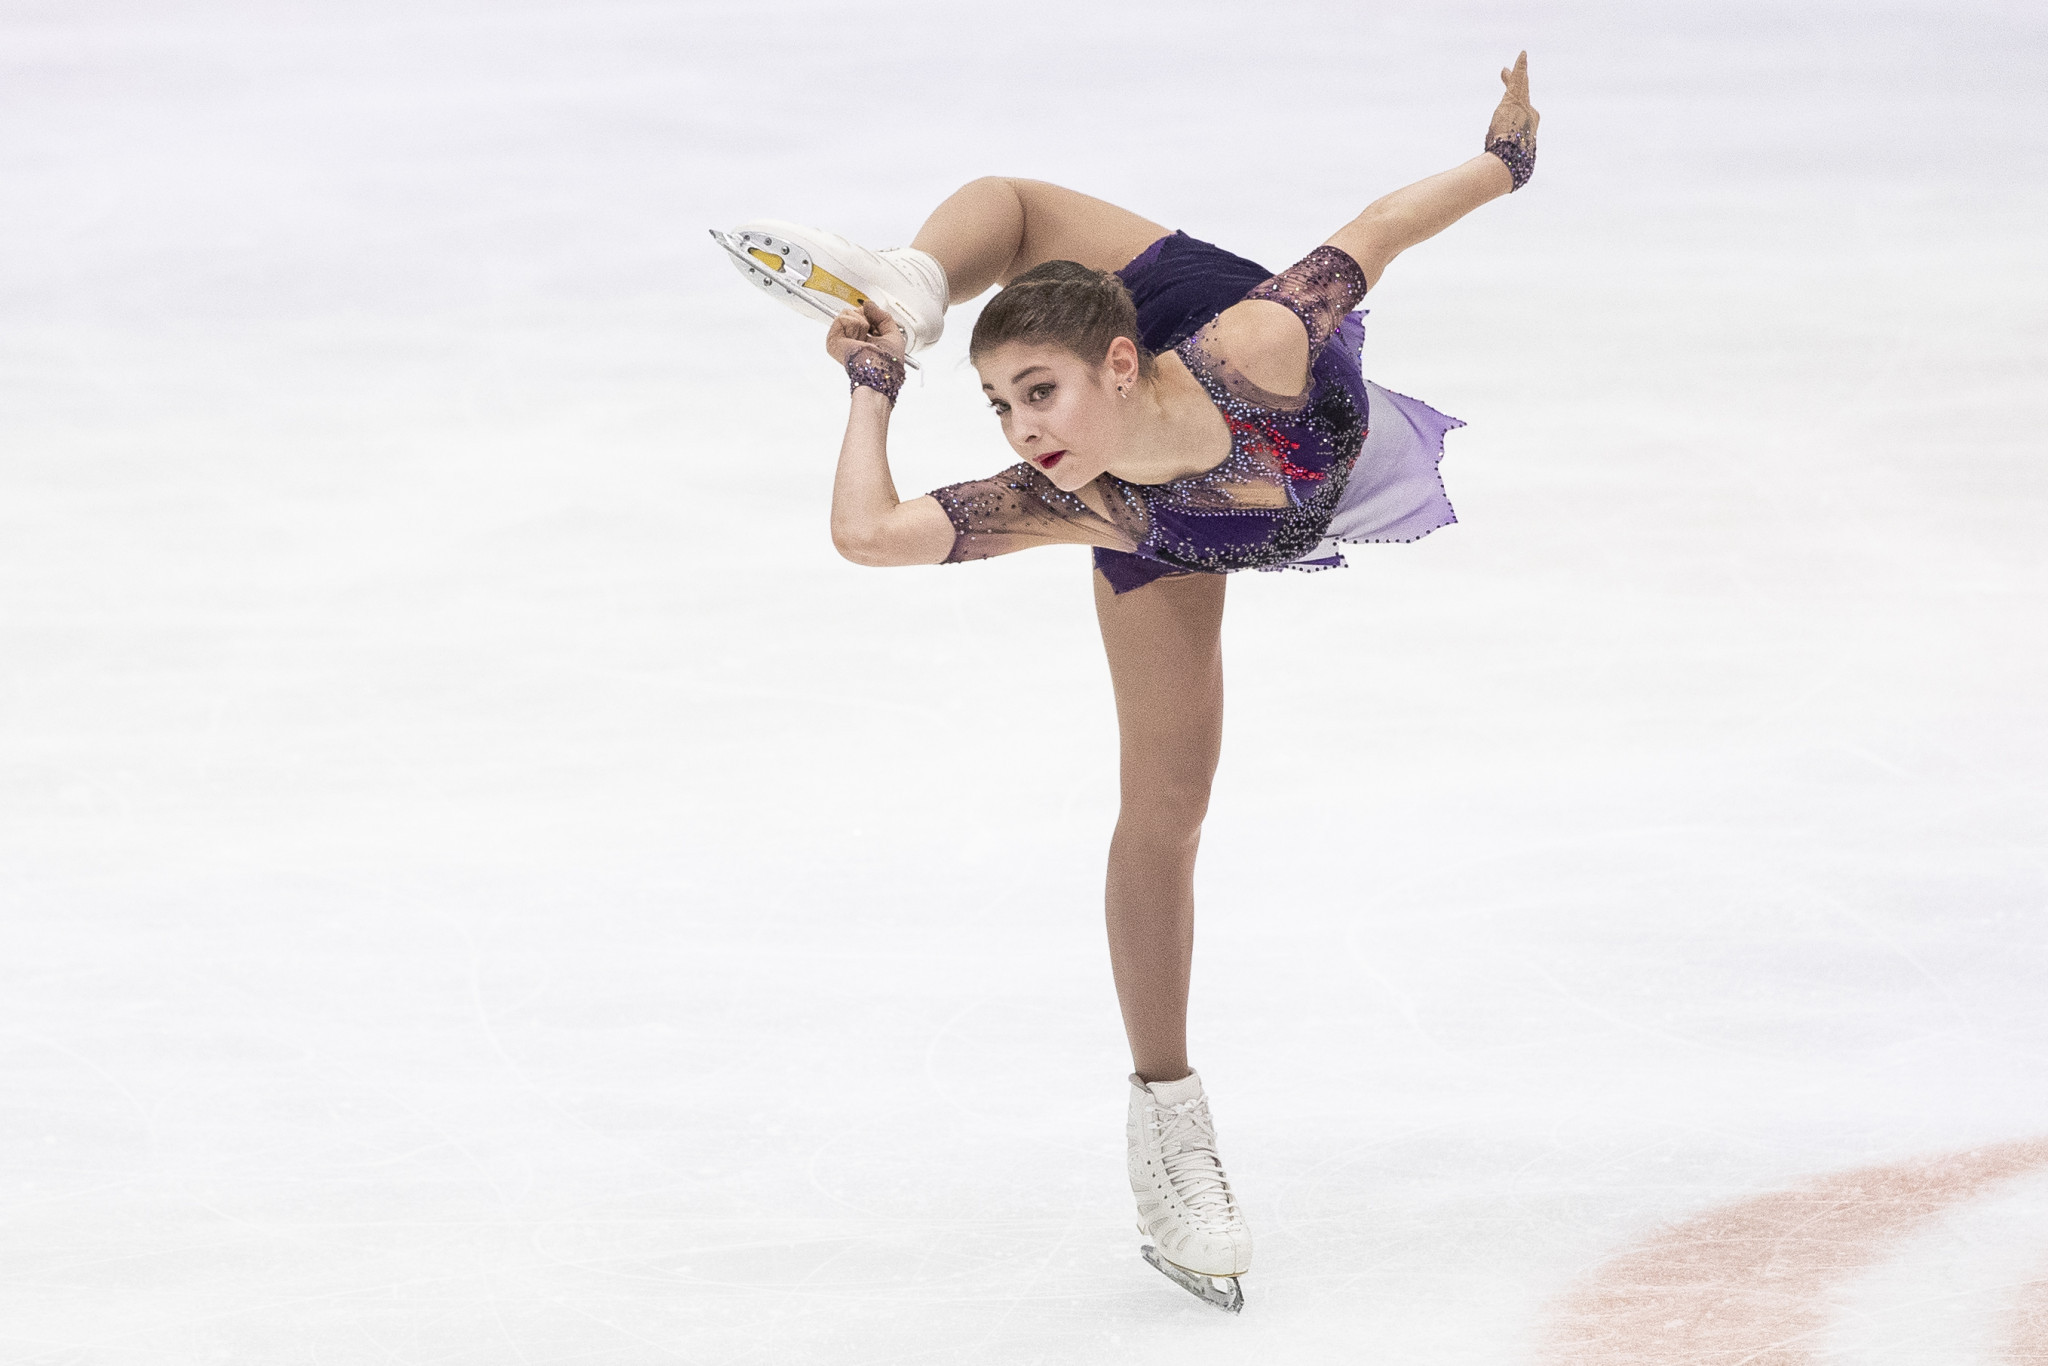 Kostornaia victory ensures Russian gold medal clean sweep at ISU European Figure Skating Championships